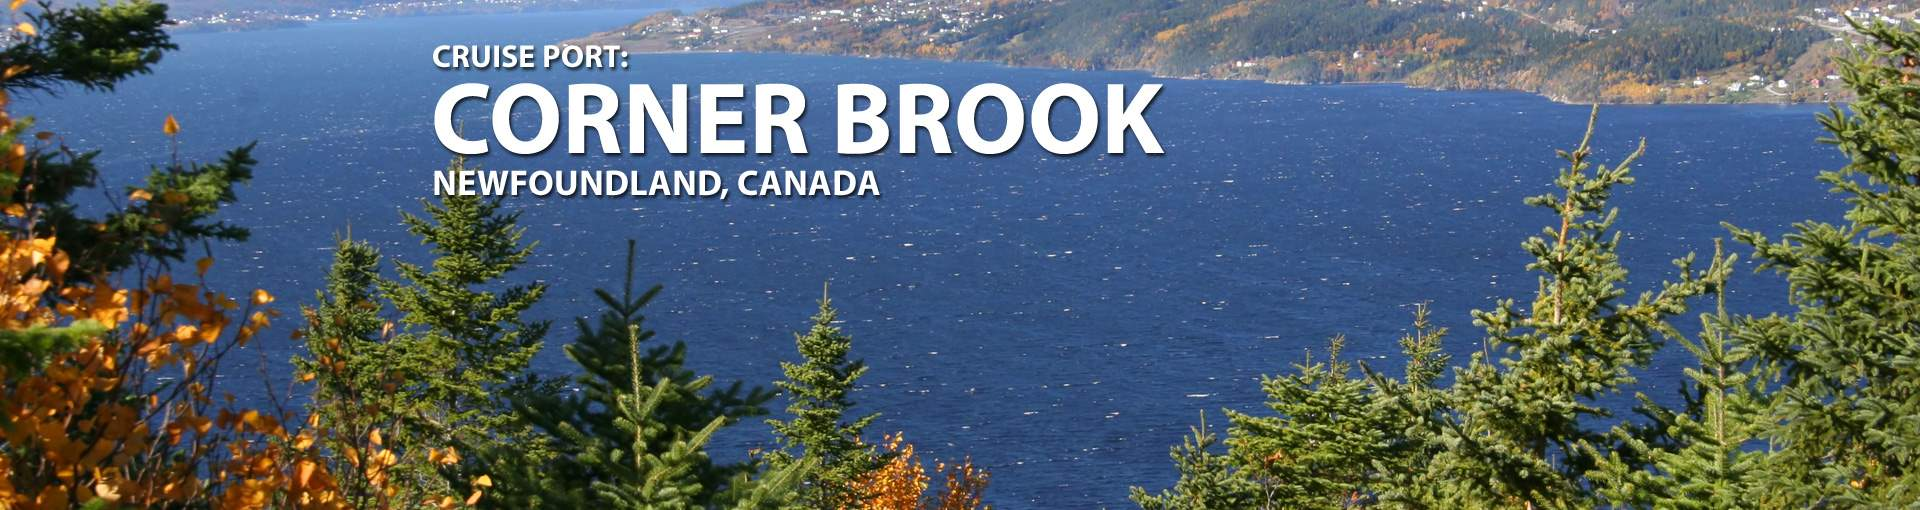 Cruises to Corner Brook, Newfoundland